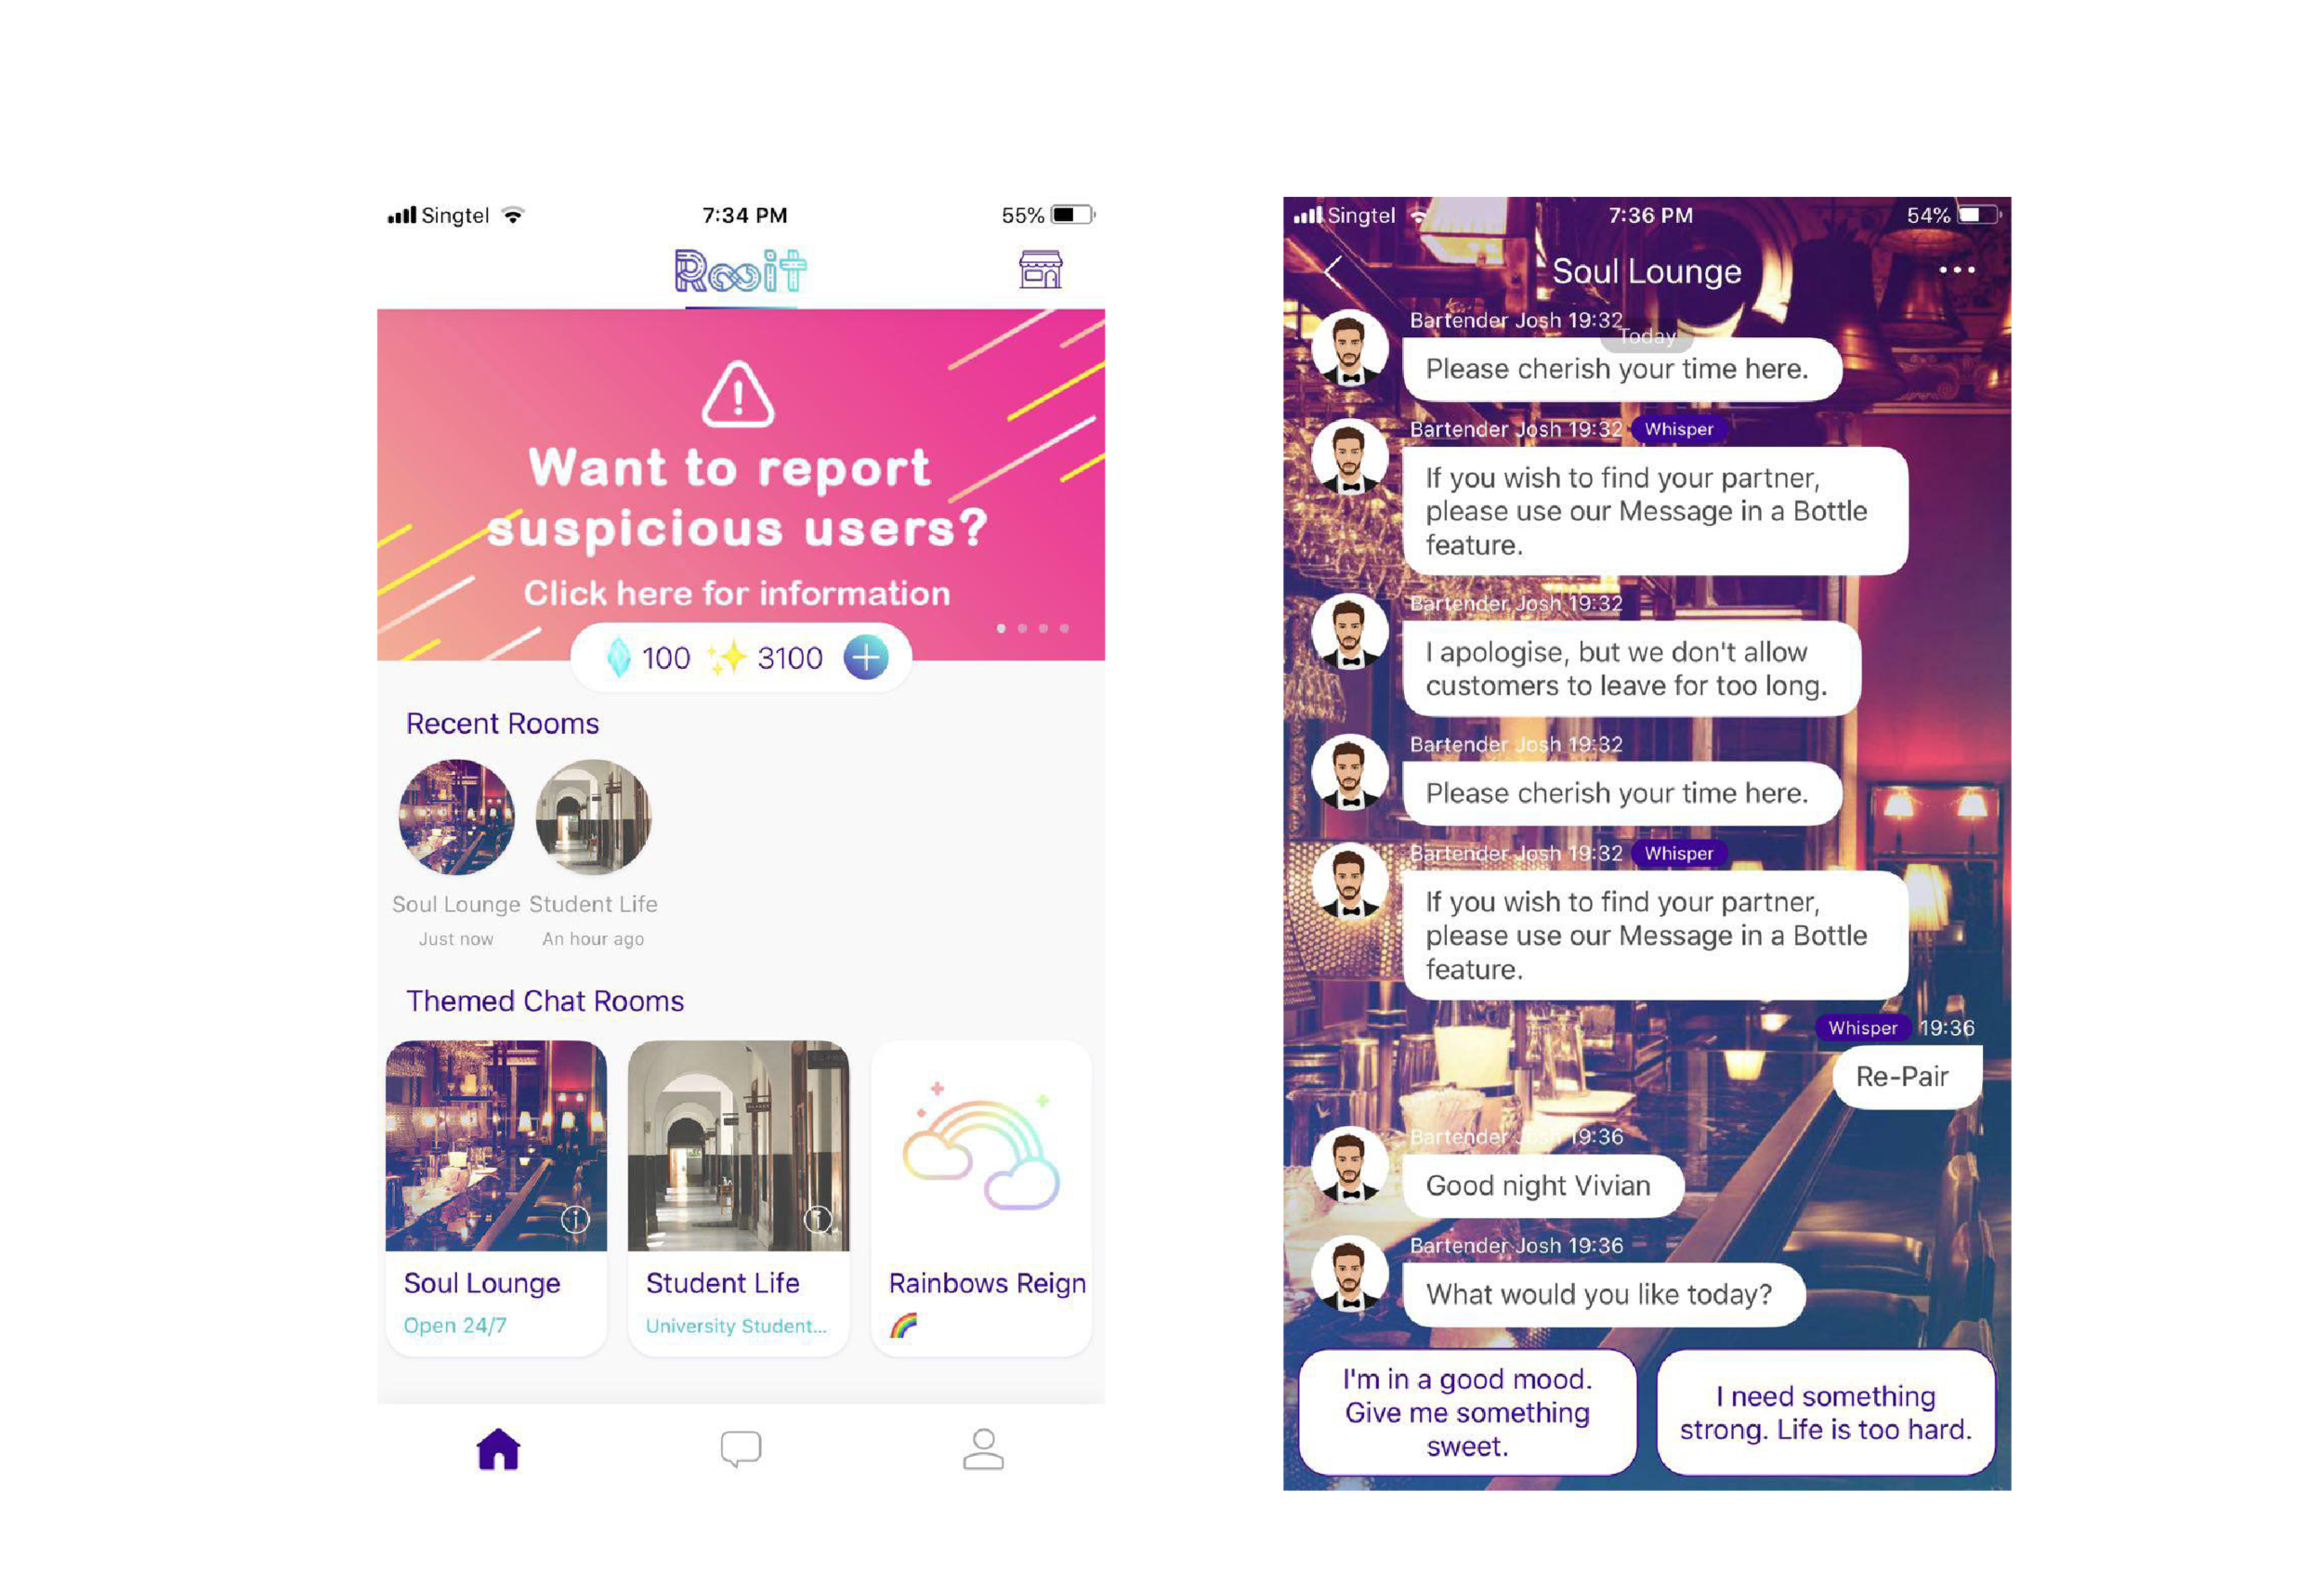 Different features & bartender-minded chatbot